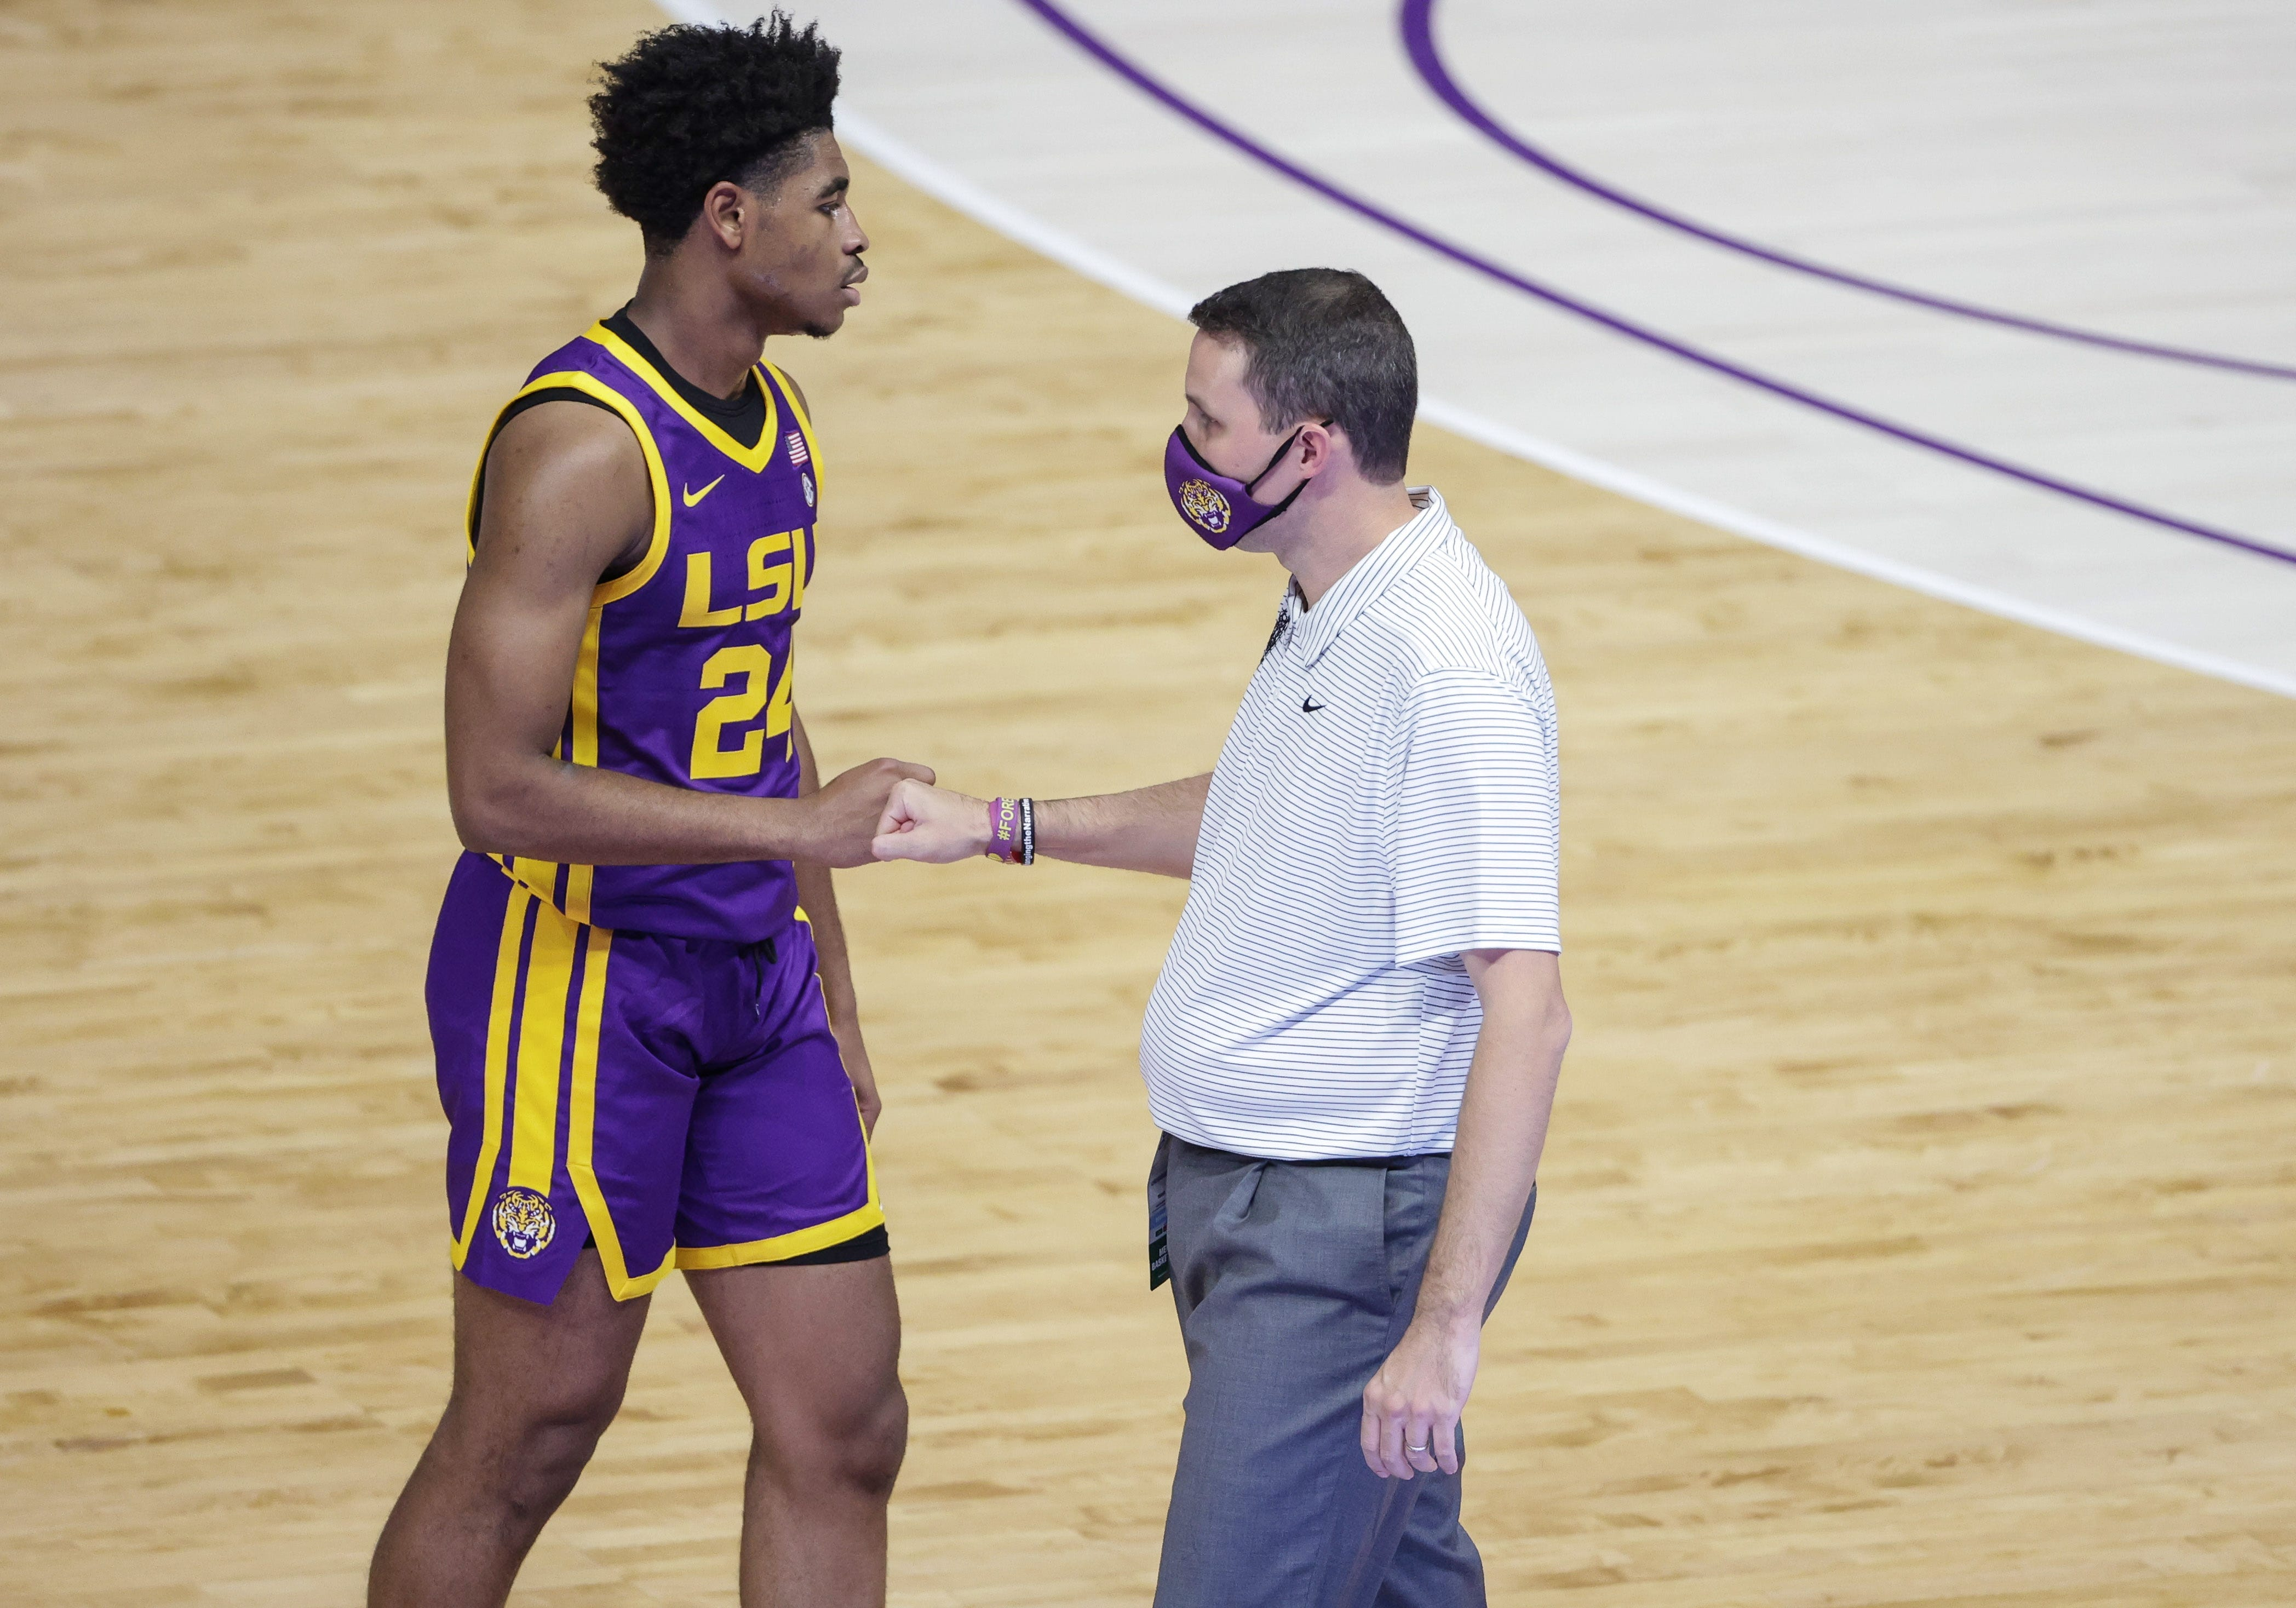 LSU basketball coach Will Wade misses victory with COVID-19, assistants quarantined